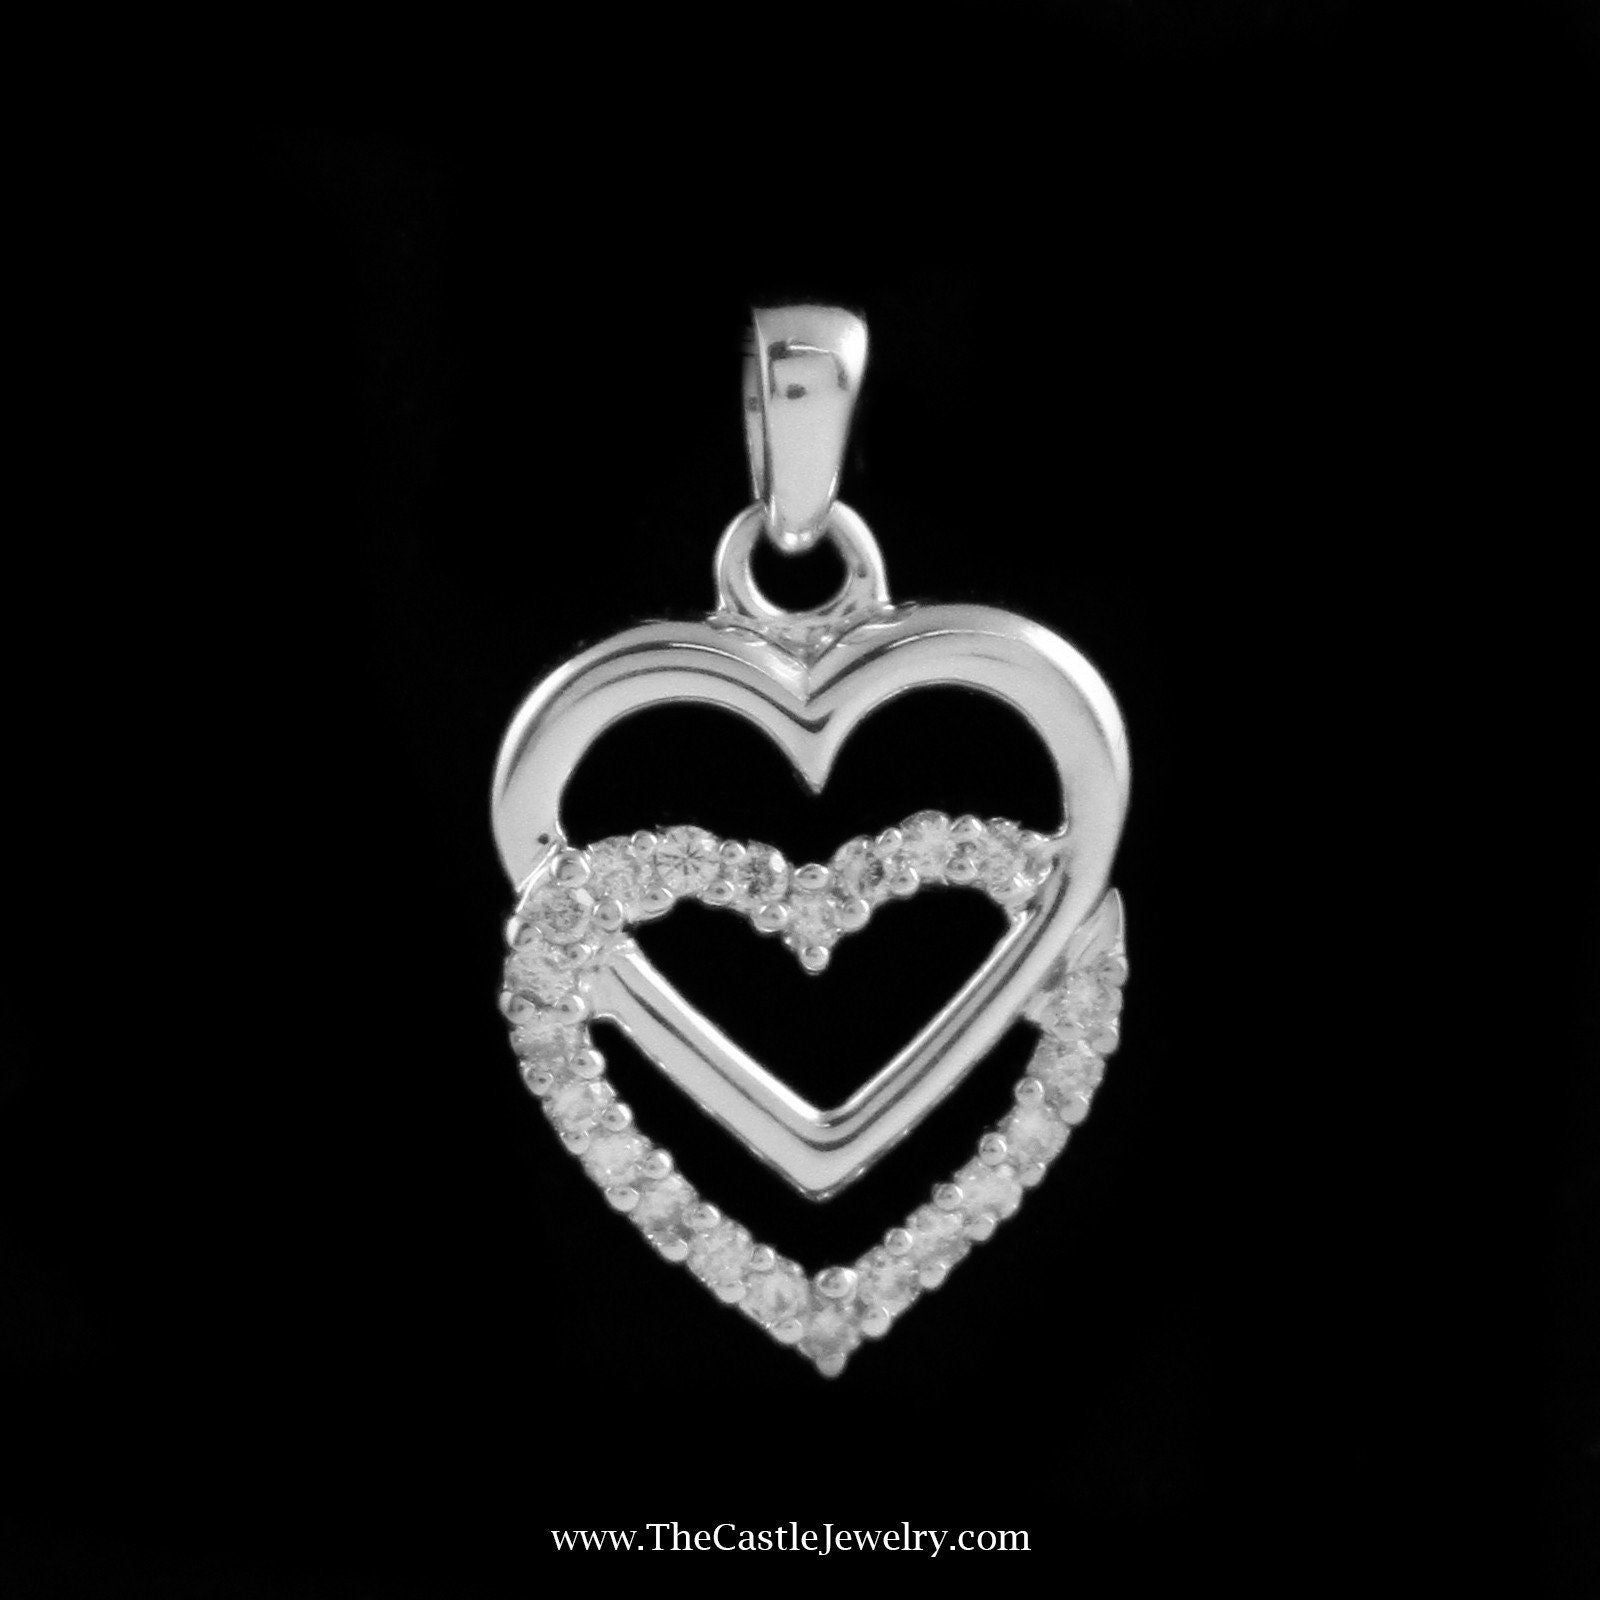 Double Interlocking Heart Pendant with .25cttw Diamond in 14K White Gold